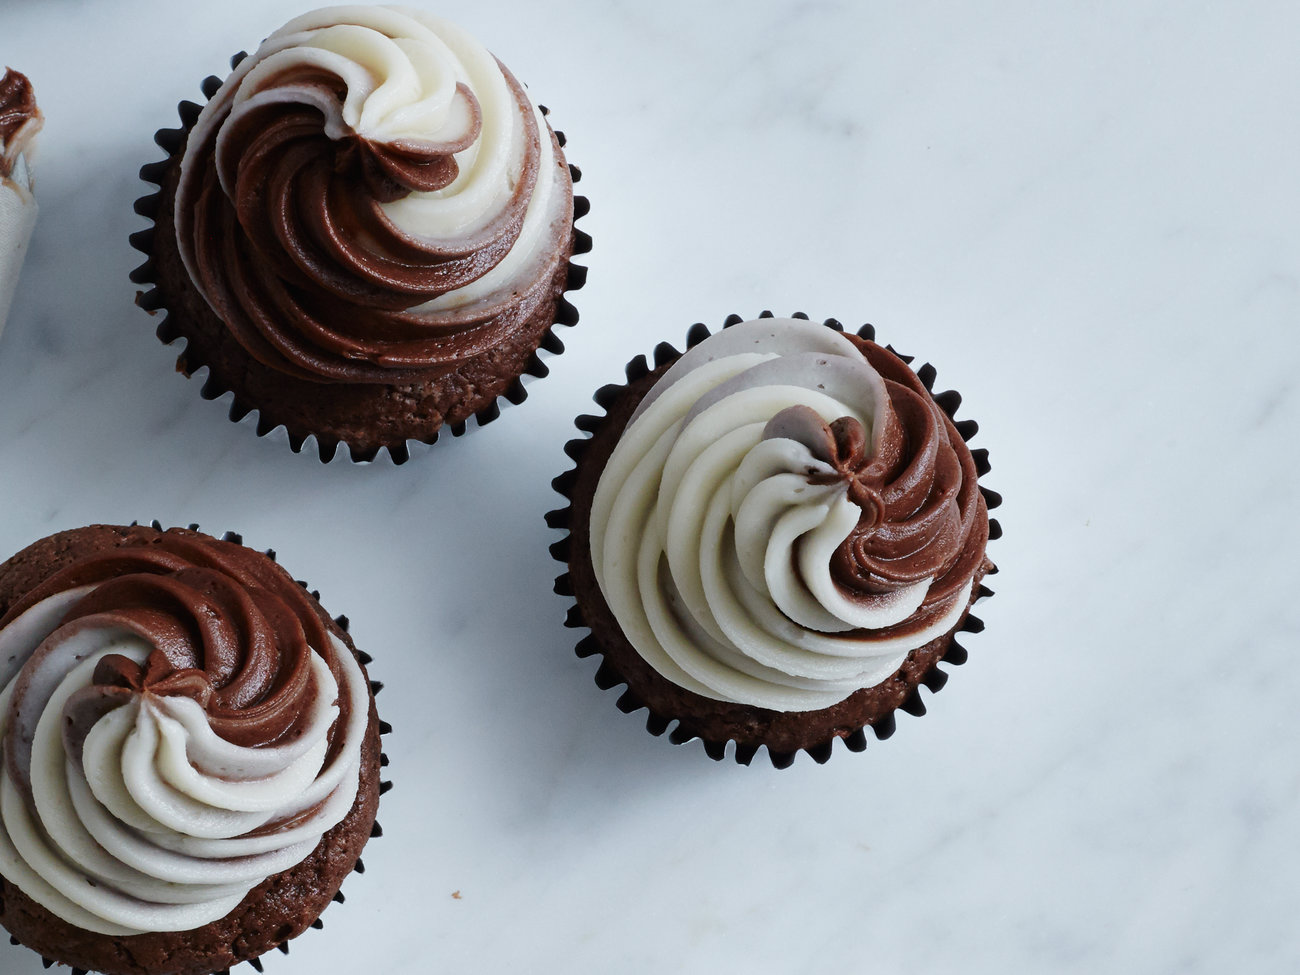 201503-FT-black-and-white-cupcakes.jpg